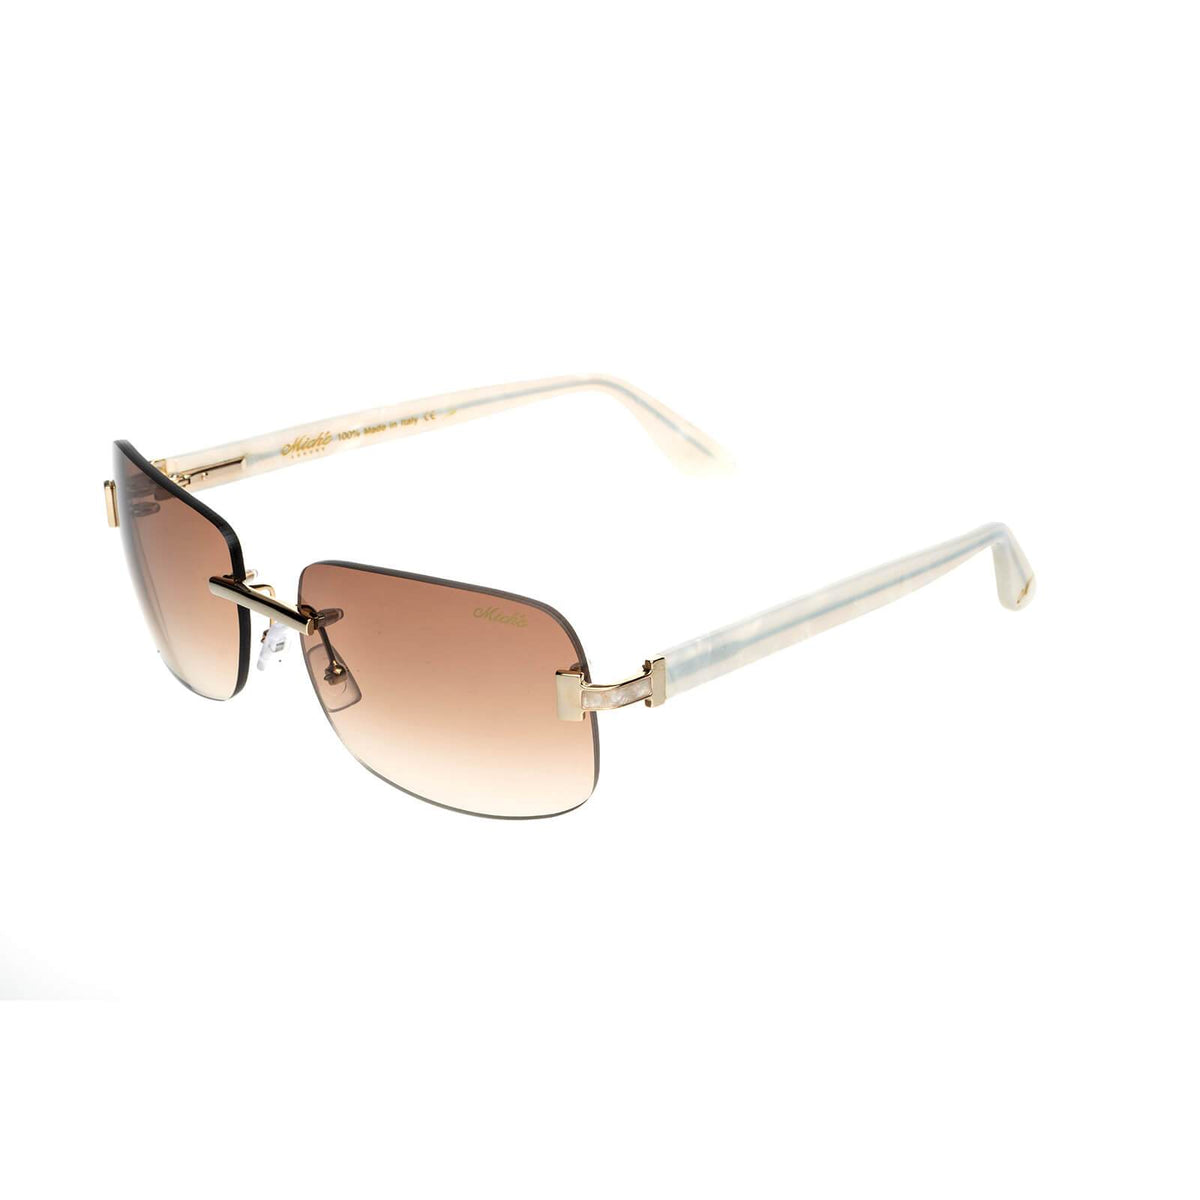 Miché Marbles Sunglasses - Brown - Gold - White